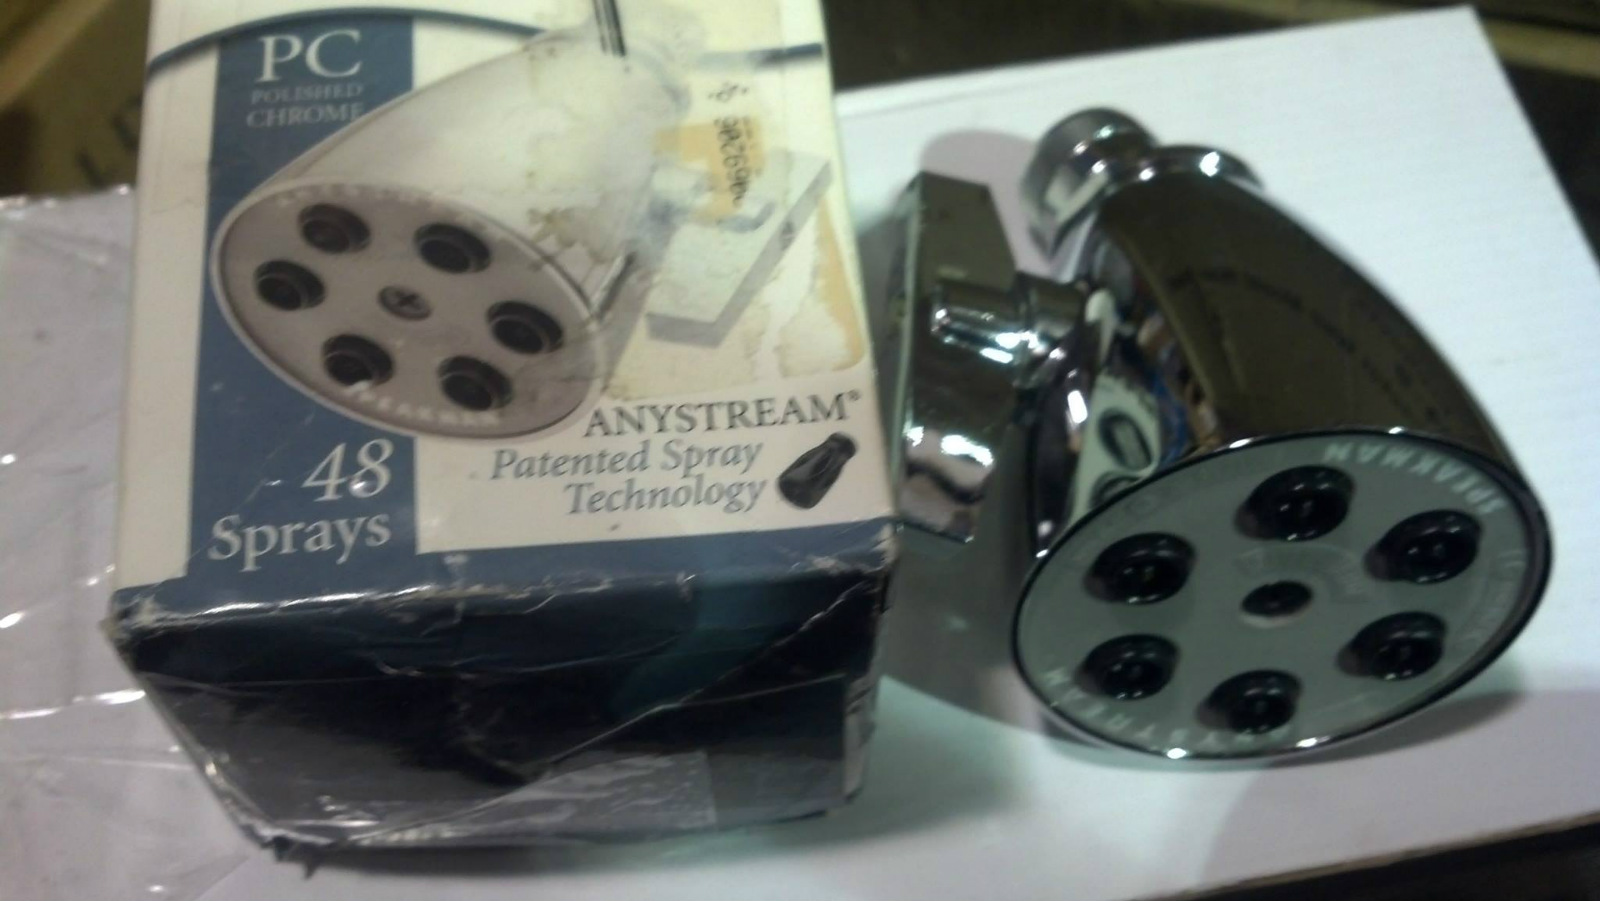 Speakman S-2252-AF Anystream Showerhead PPP , Avi Depot=Much More ...